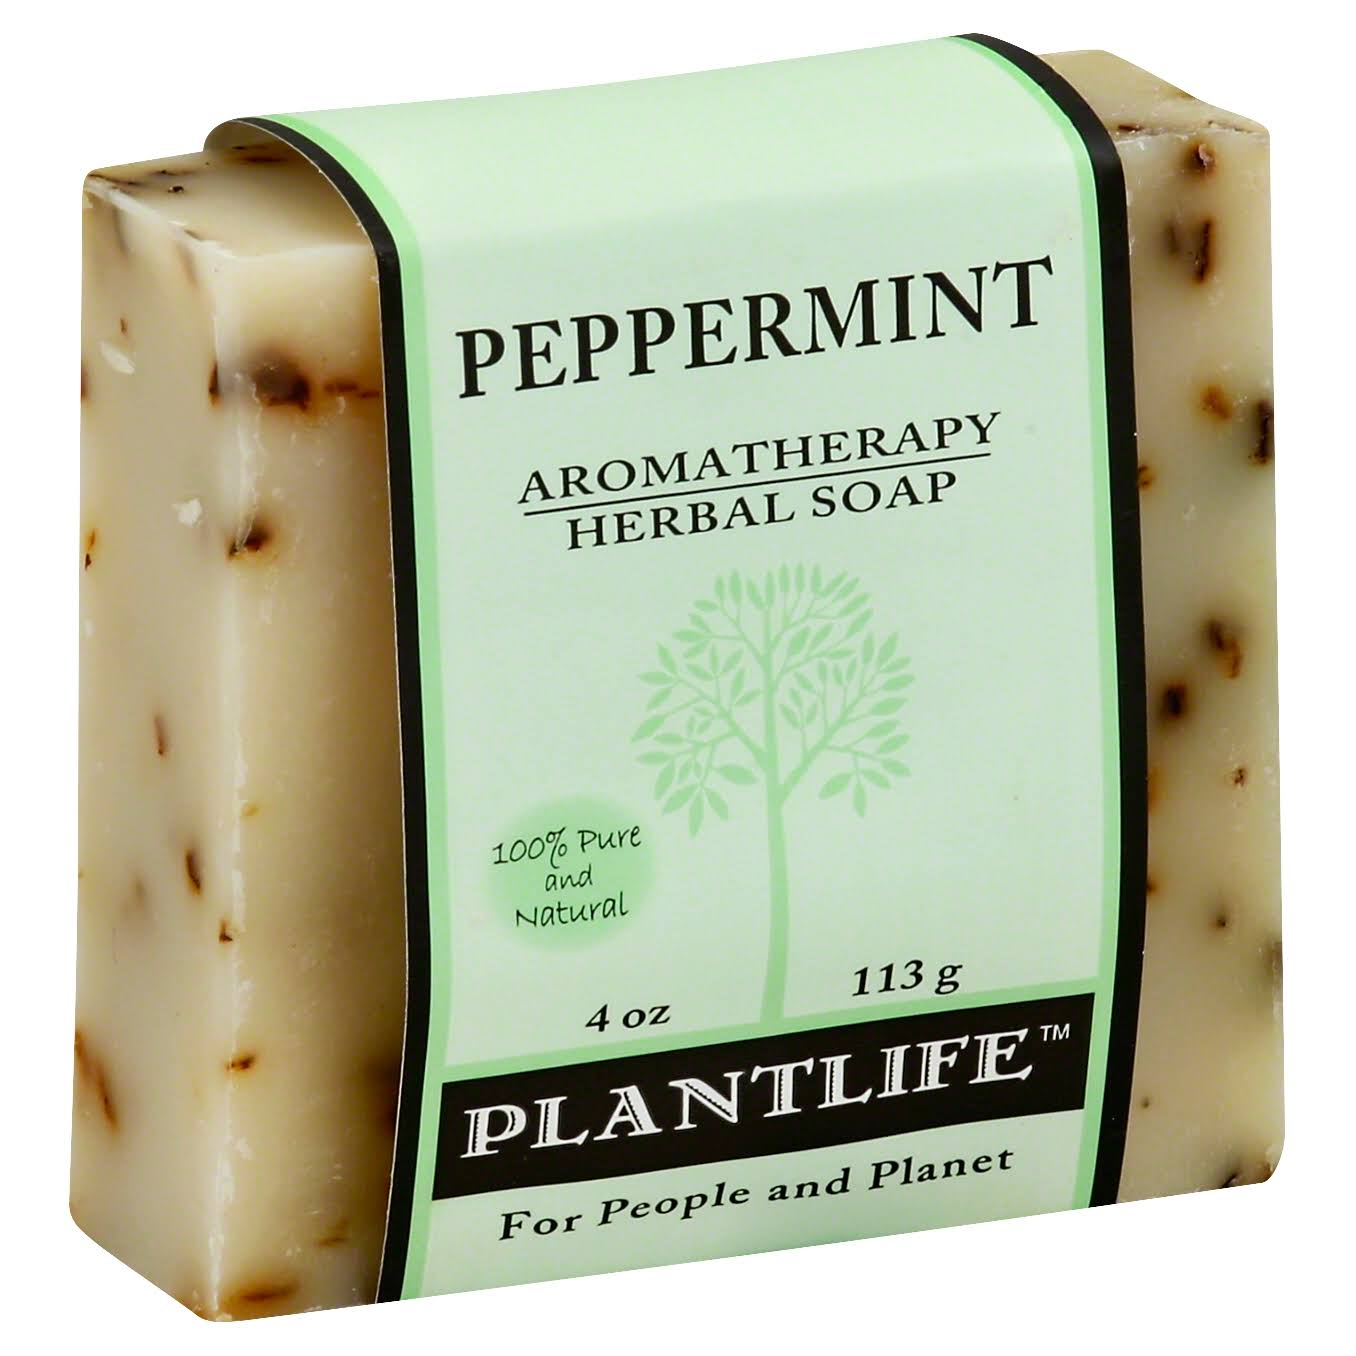 Plantlife Aromatherapy Herbal Soap - Peppermint, 4oz